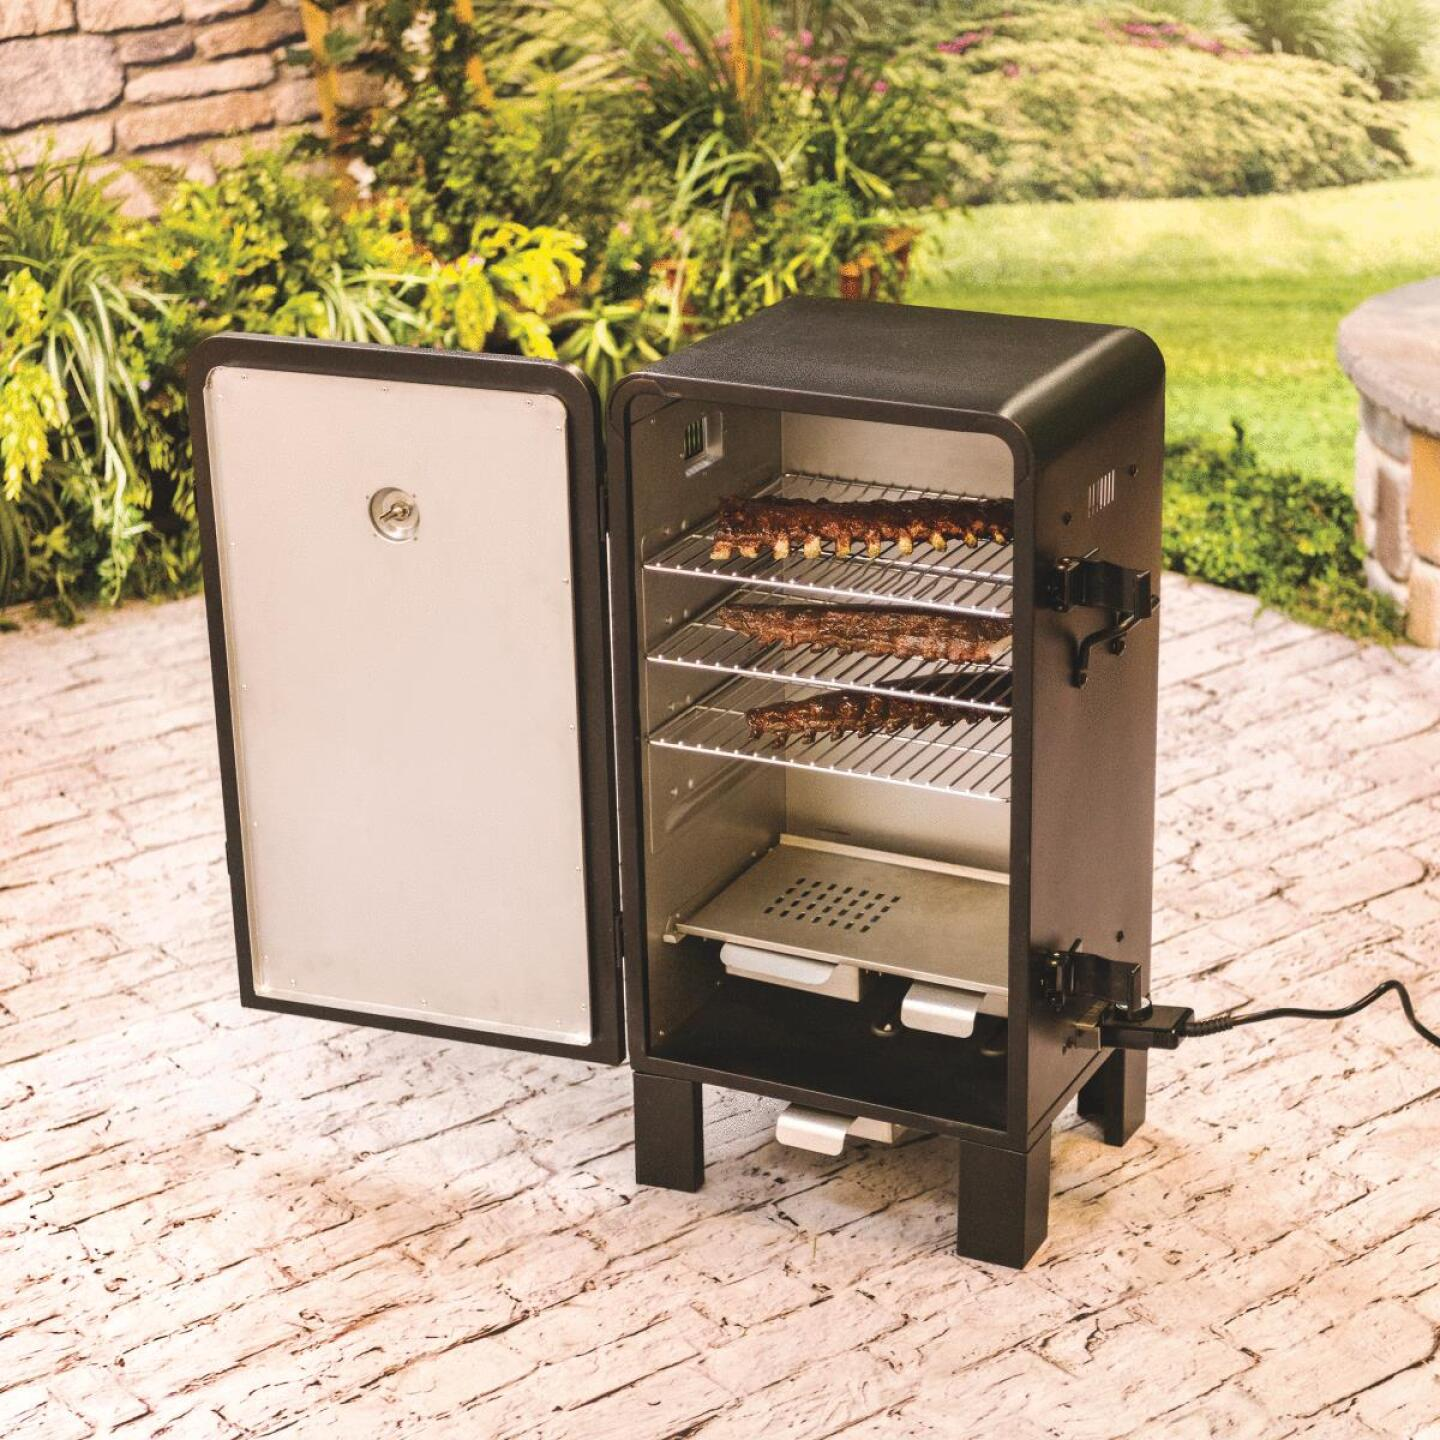 Char-Broil 37 In. H. 1500-Watt Vertical Electric Smoker Image 3